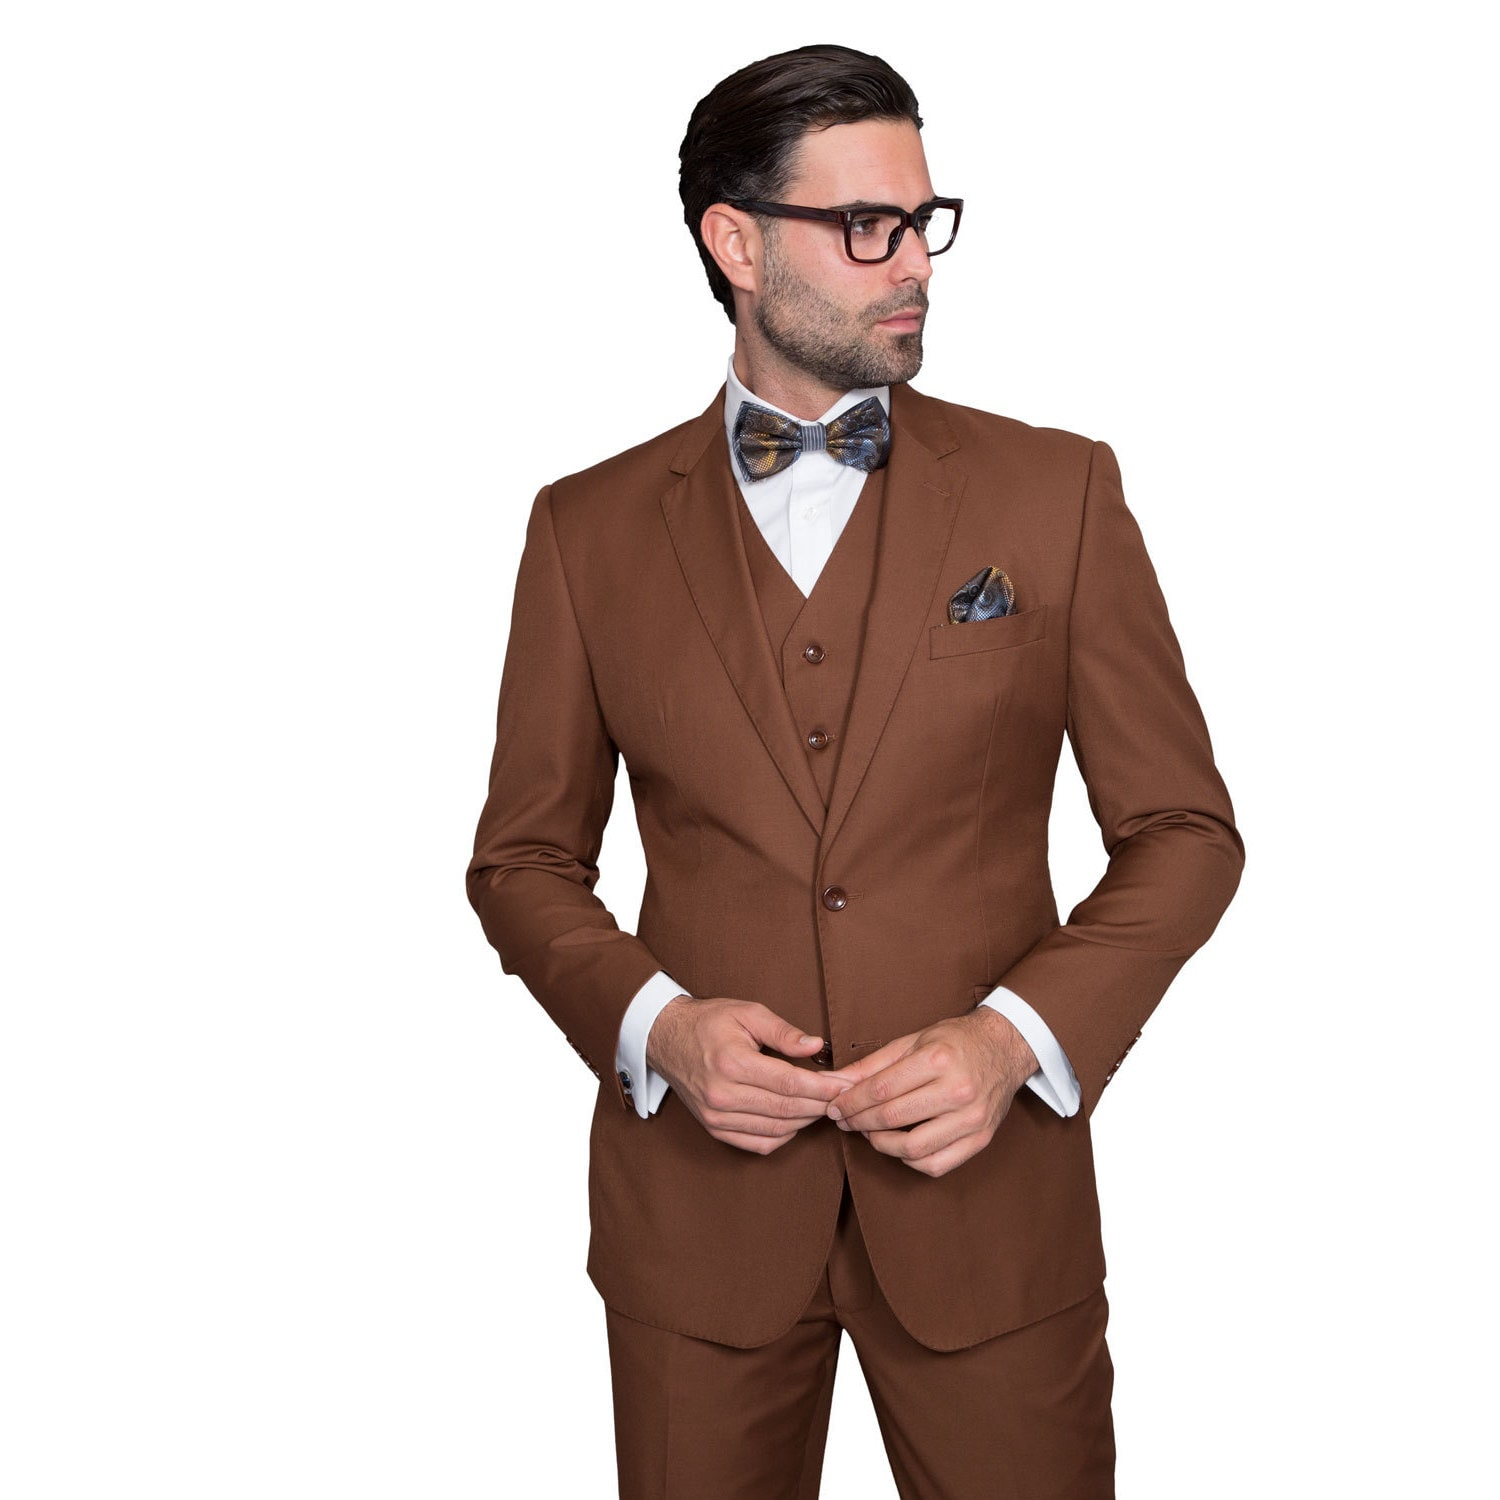 c07e318741c Shop Statement Suits Men s Wool Solid Color 3-piece Suit - On Sale - Free  Shipping Today - Overstock - 14681862